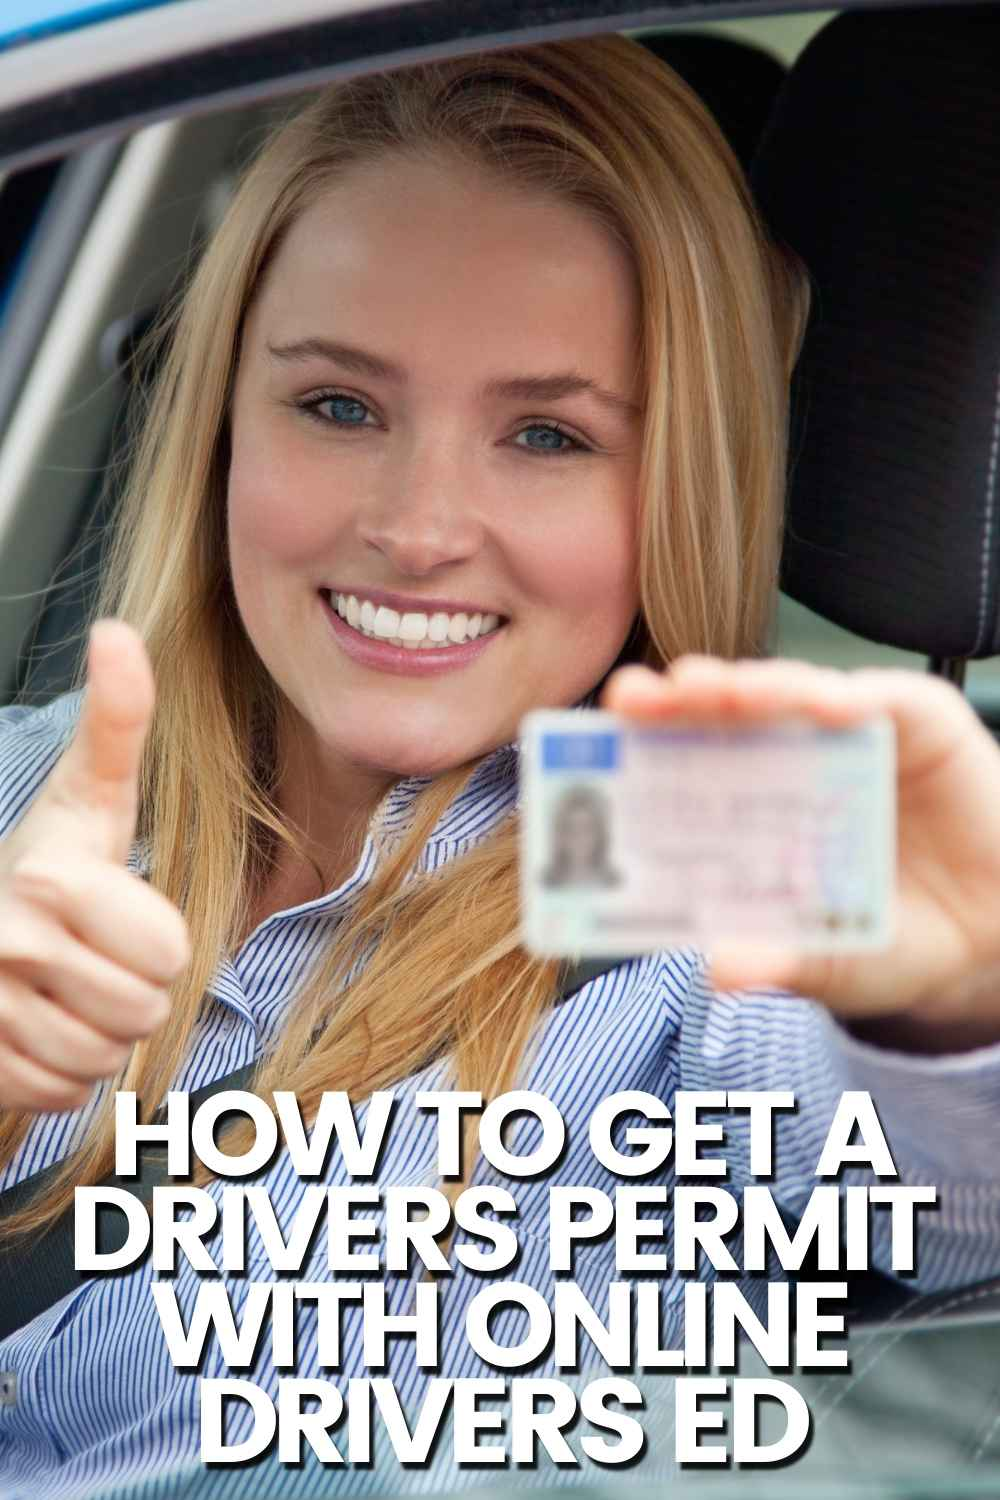 drivers permit with online drivers education